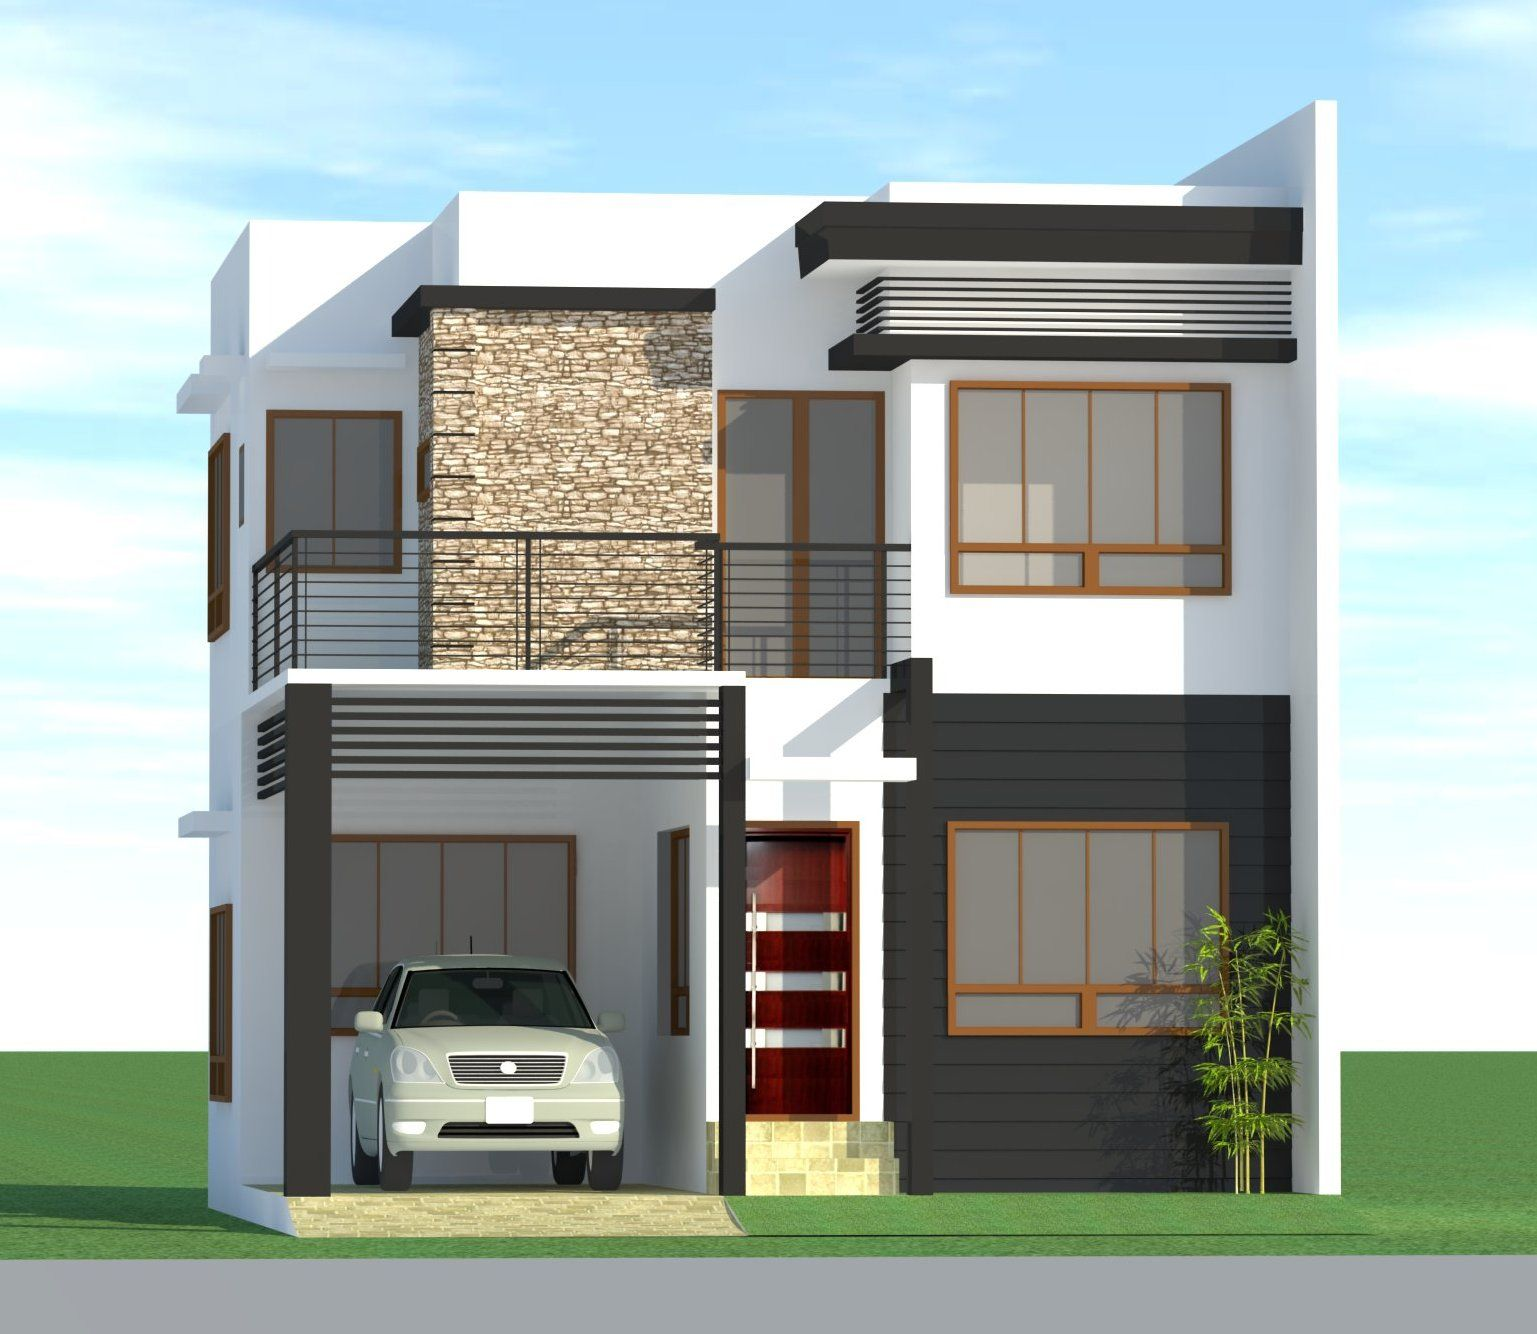 Philippines house design images 3 home design ideas Design of modern houses in philippines